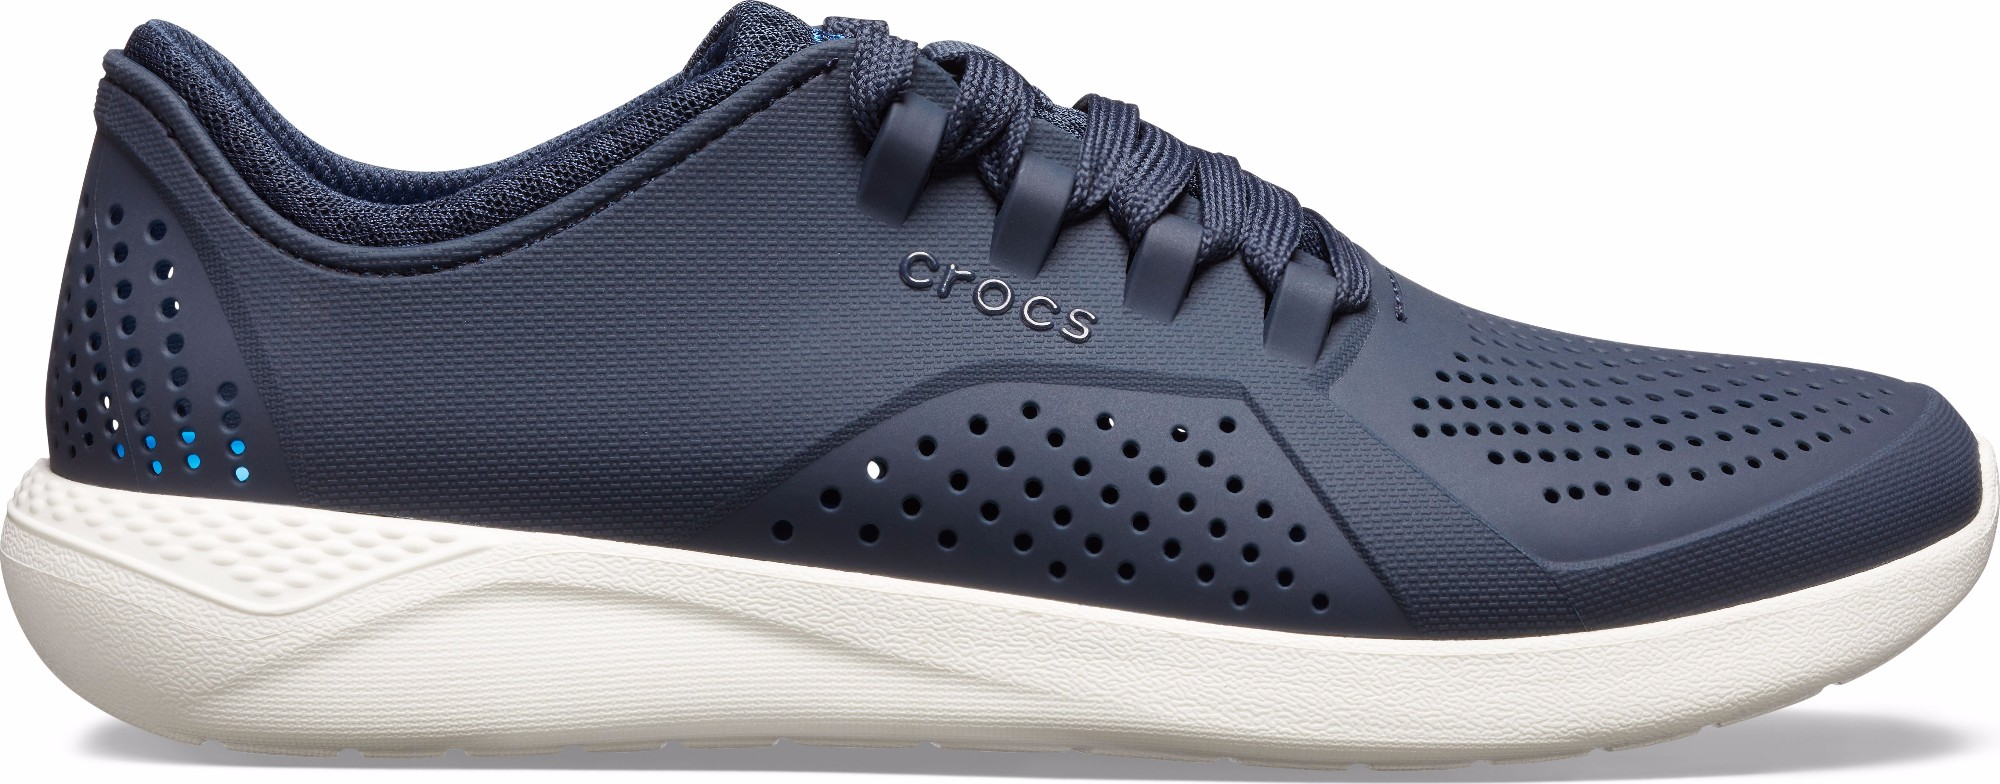 Crocs™ LiteRide Pacer Navy/White 47,5